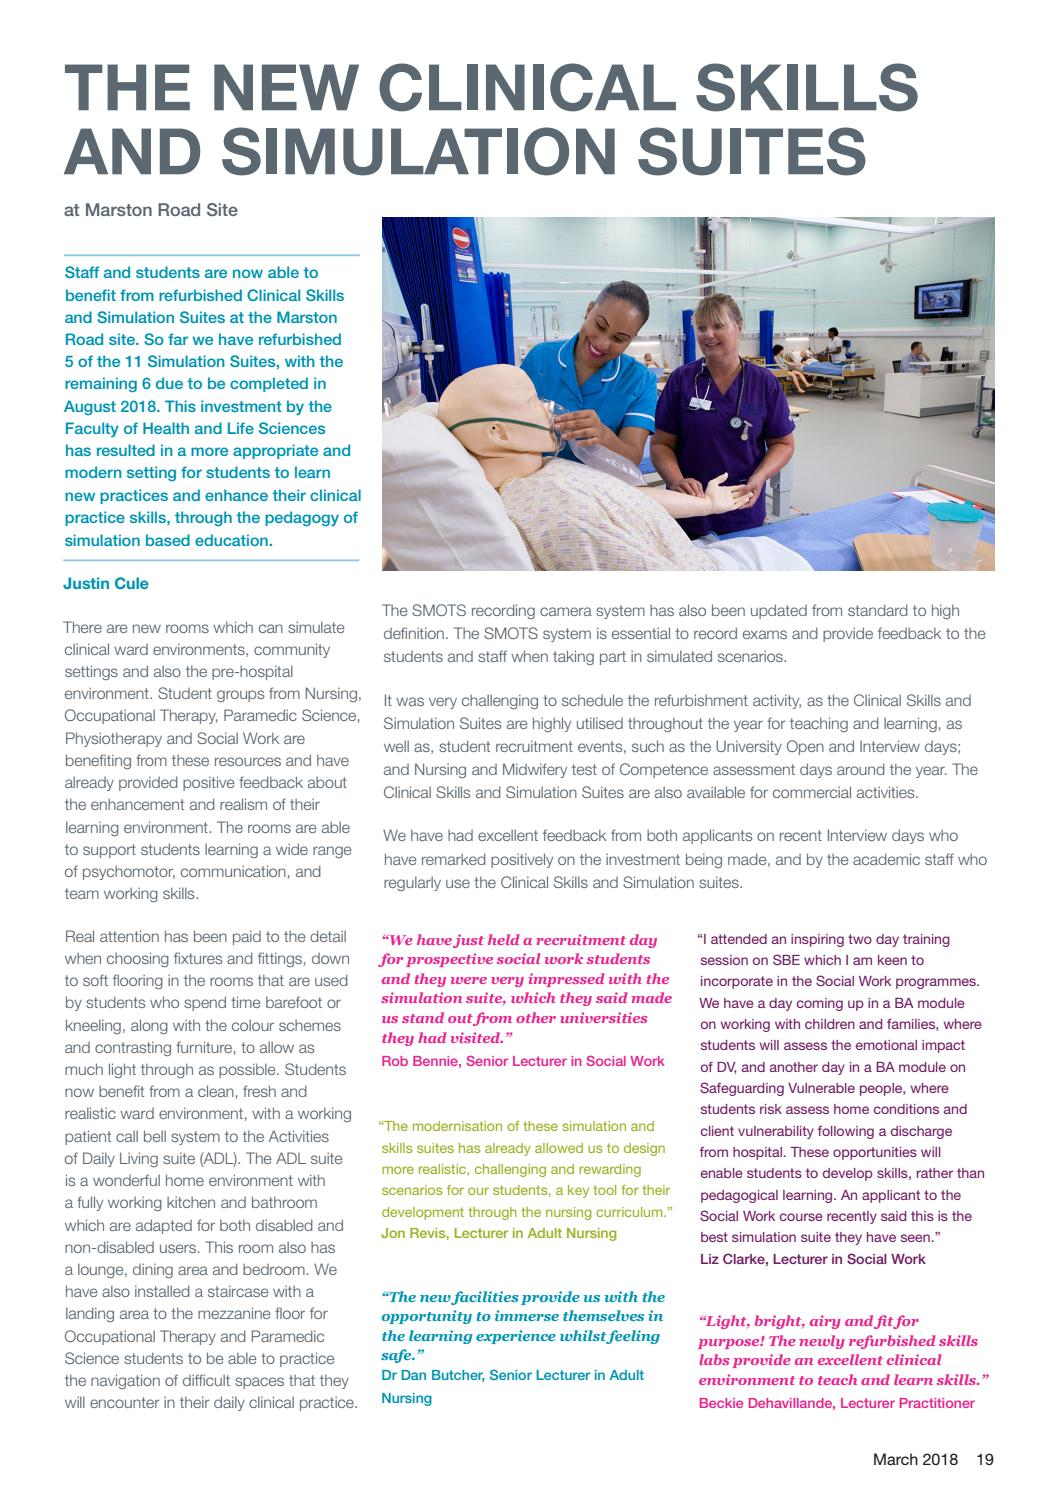 HLS Faculty and Research Update Spring 18 by brookes7 - issuu